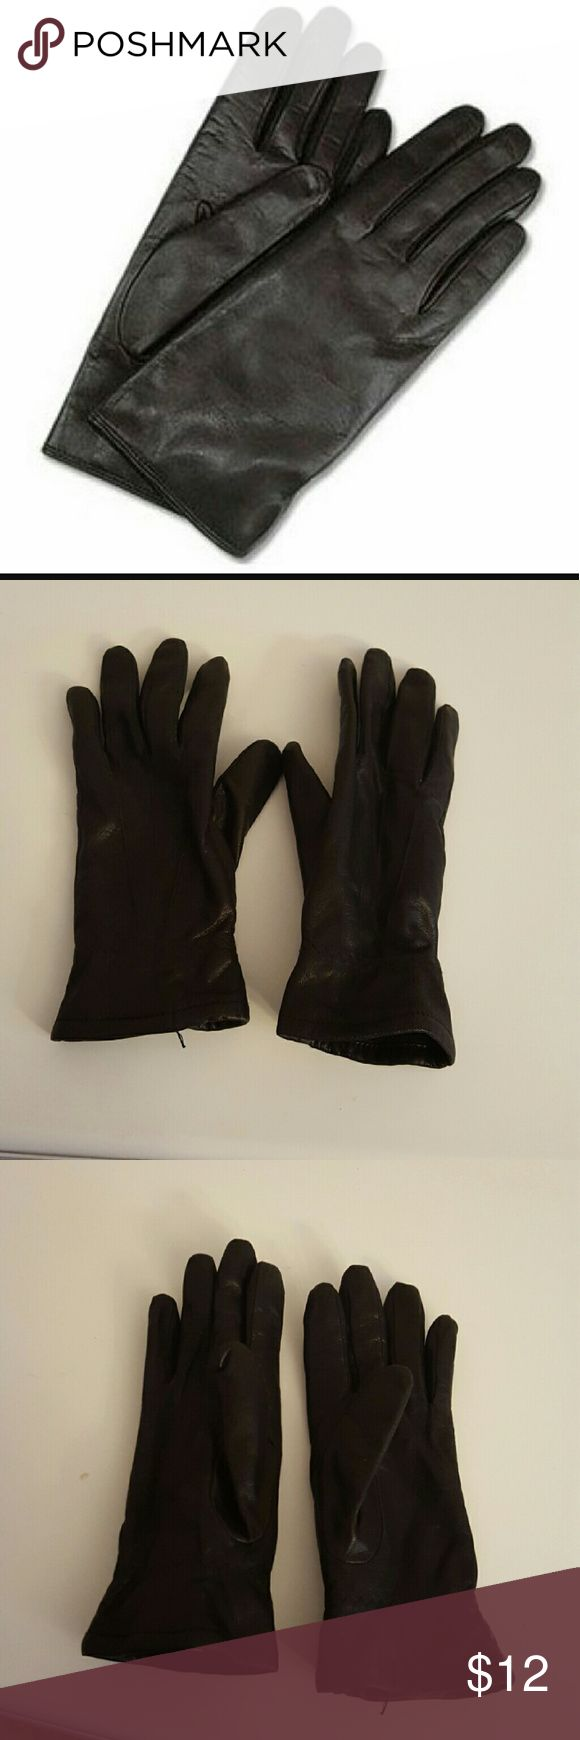 "Black Leather Gloves Driving Fownes Medium Black leather gloves or ""driving gloves"" size medium, in excellent condition. No, these are not the gloves OJ wore! The brand is Fownes.   Smoke free home. I will gladly bundle items to give you a discount (the more you buy, the cheaper I can let everything go!). Many items can be added on for only $1. fownes Accessories Gloves & Mittens"